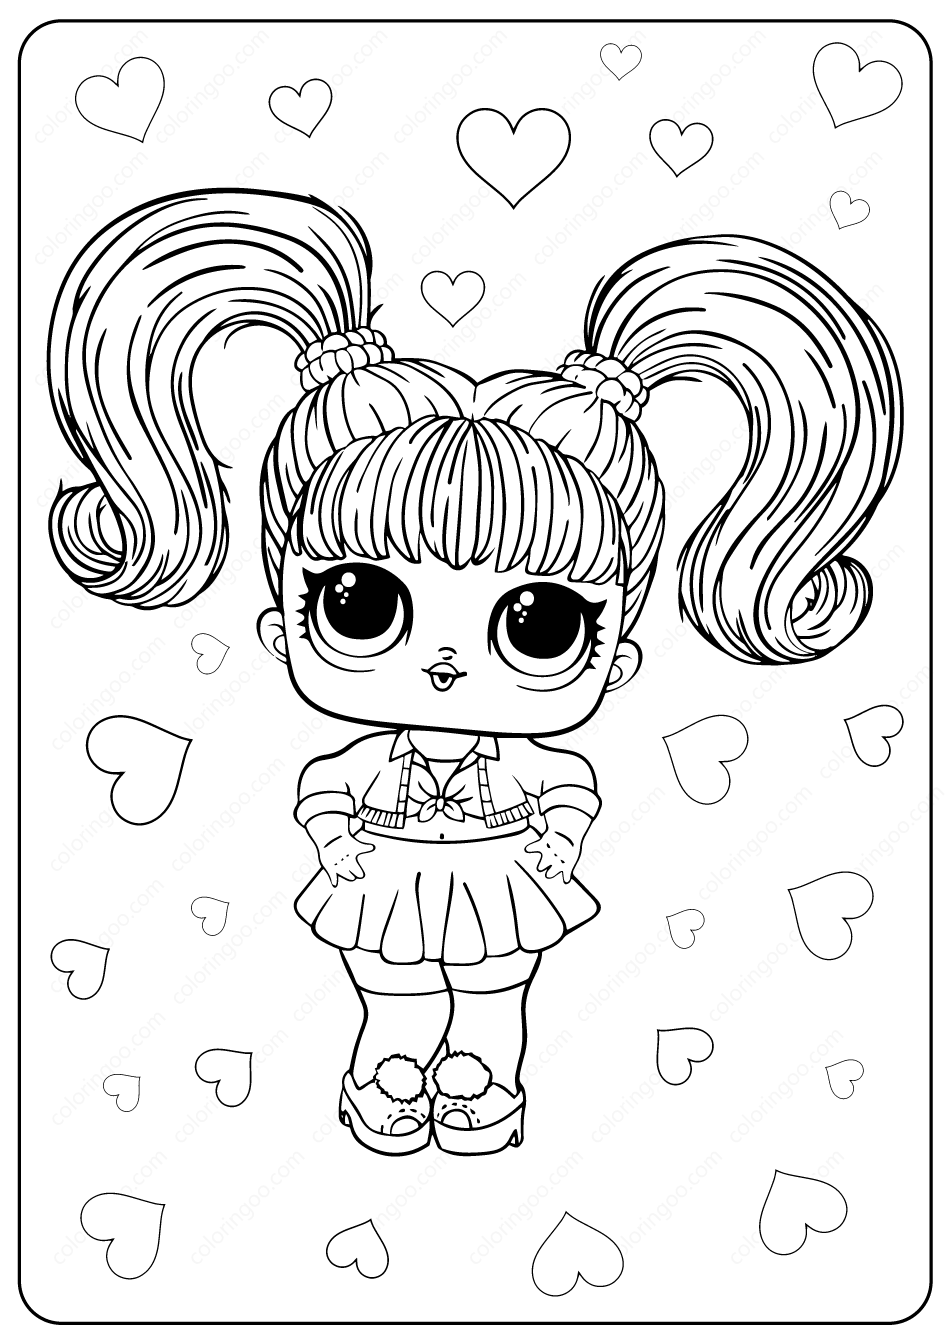 Printable Lol Surprise Oops Baby Coloring Pages In 2020 Baby Coloring Pages Cartoon Coloring Pages Cute Coloring Pages